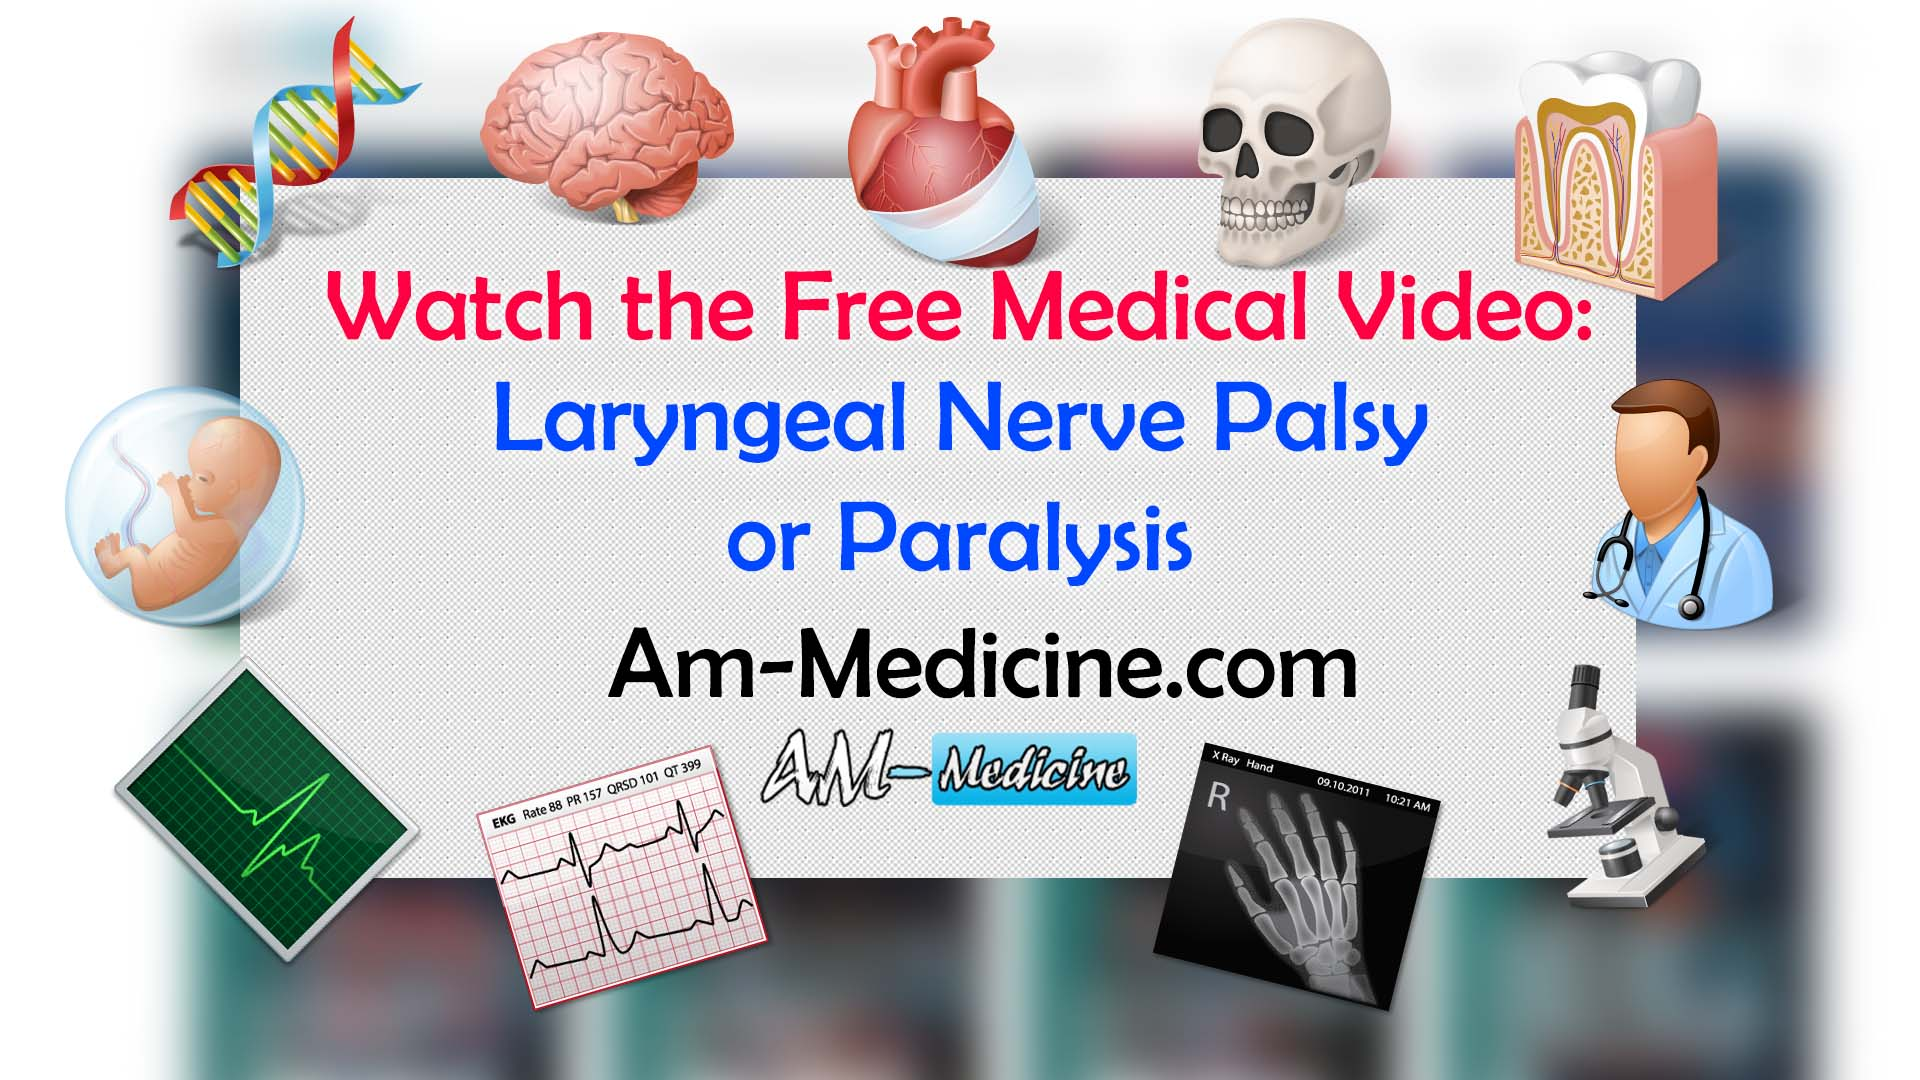 Laryngeal Nerve Palsy or Paralysis (Video)